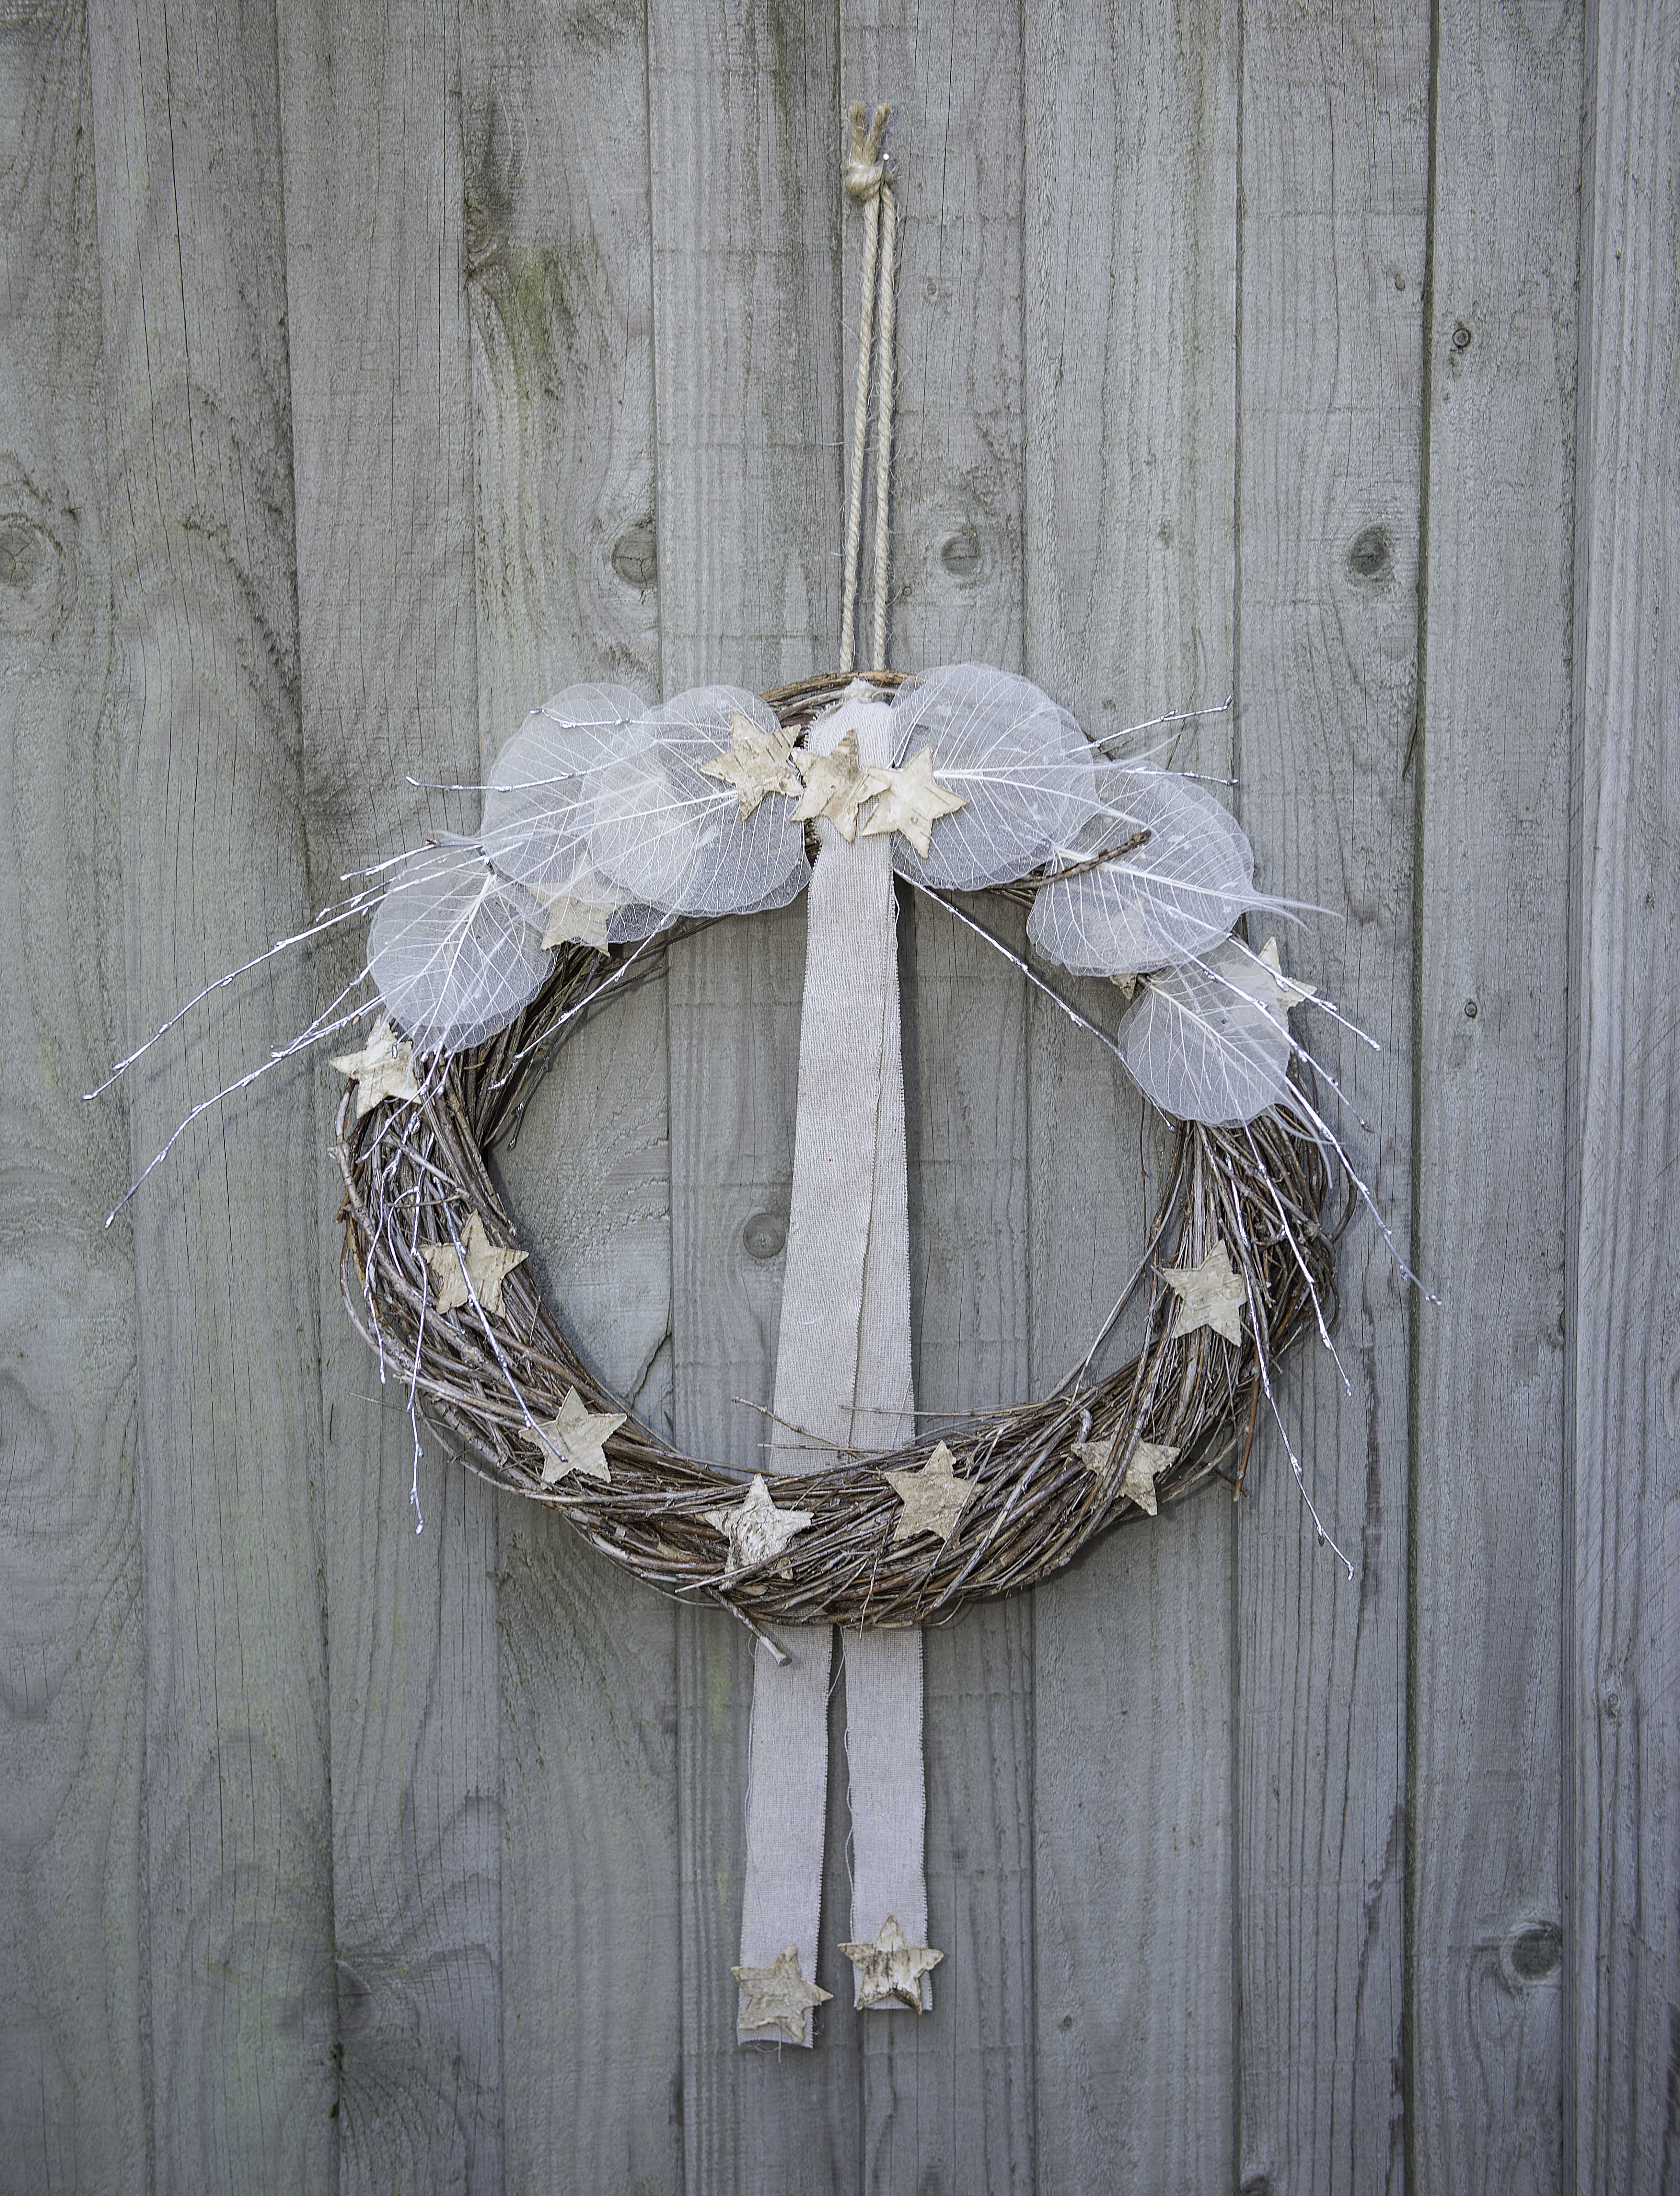 Sue Arran Xmas twisted birch wreath